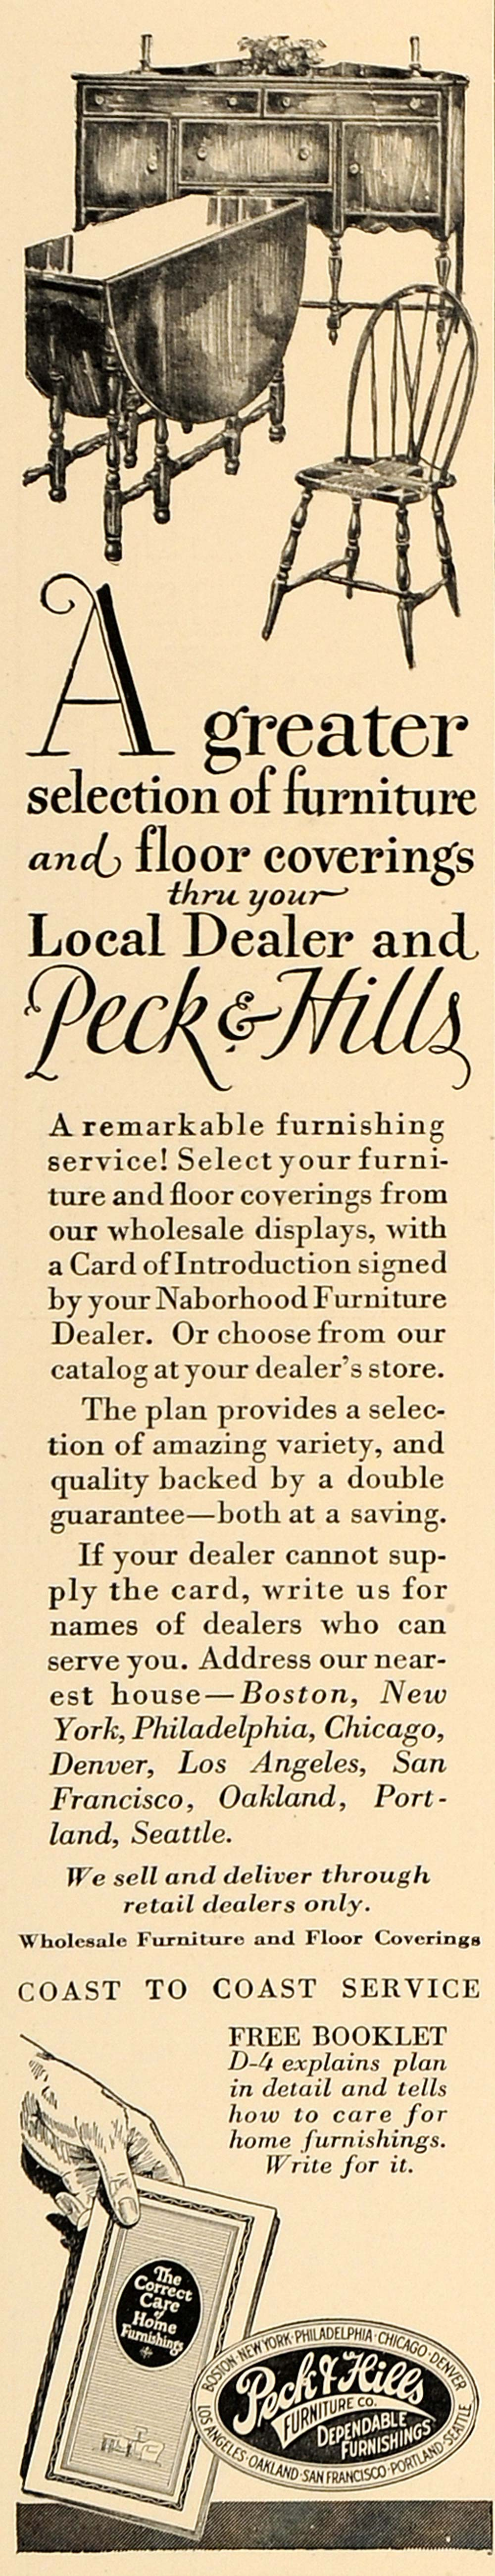 1927 Ad Peck Hills Furniture Folding Table Sideboard - ORIGINAL ADVERTISING GHB1